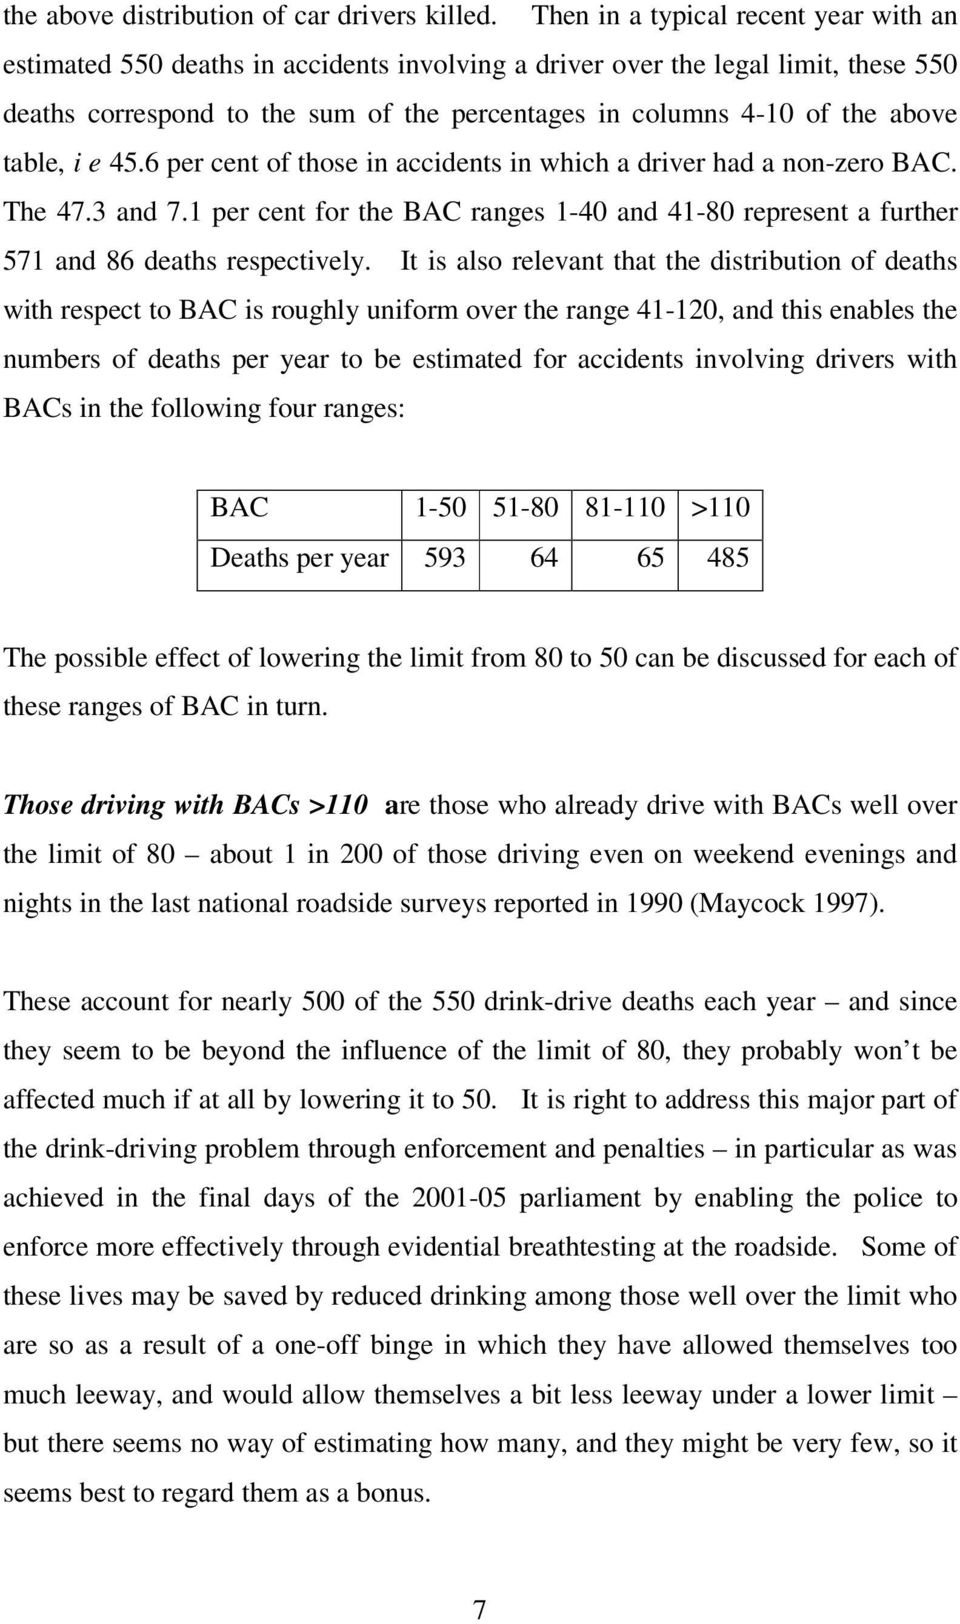 table, i e 45.6 per cent of those in accidents in which a driver had a non-zero BAC. The 47.3 and 7.1 per cent for the BAC ranges 1-40 and 41-80 represent a further 571 and 86 deaths respectively.